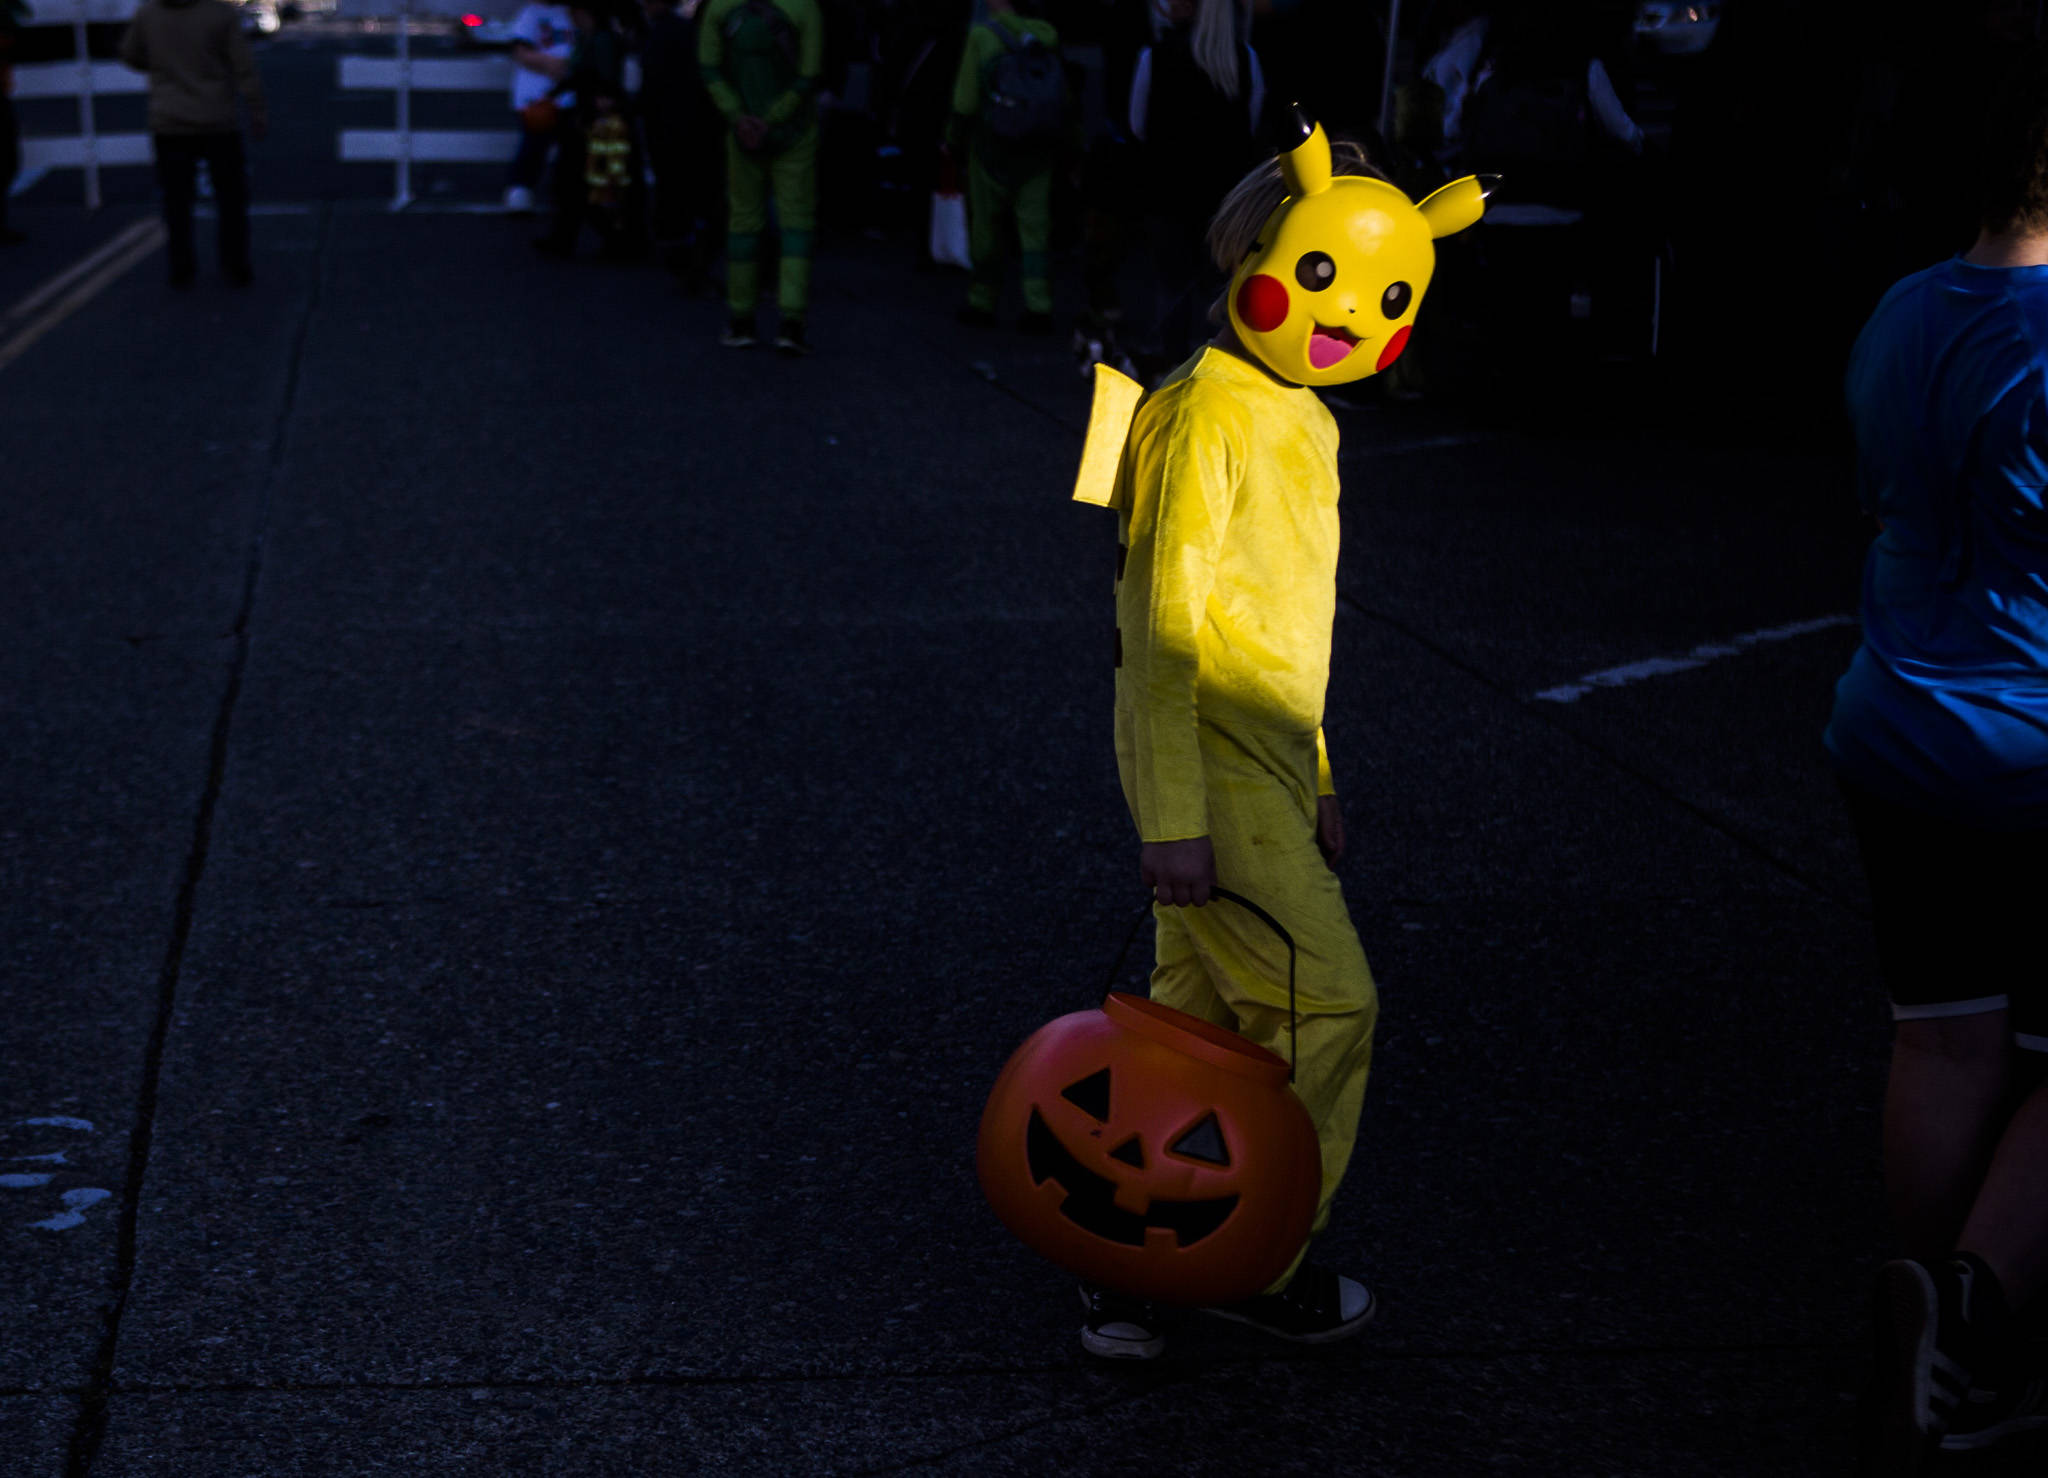 A Pikachu walks across California Street during downtown trick-or-treating Thursday in Everett. (Olivia Vanni / The Herald)